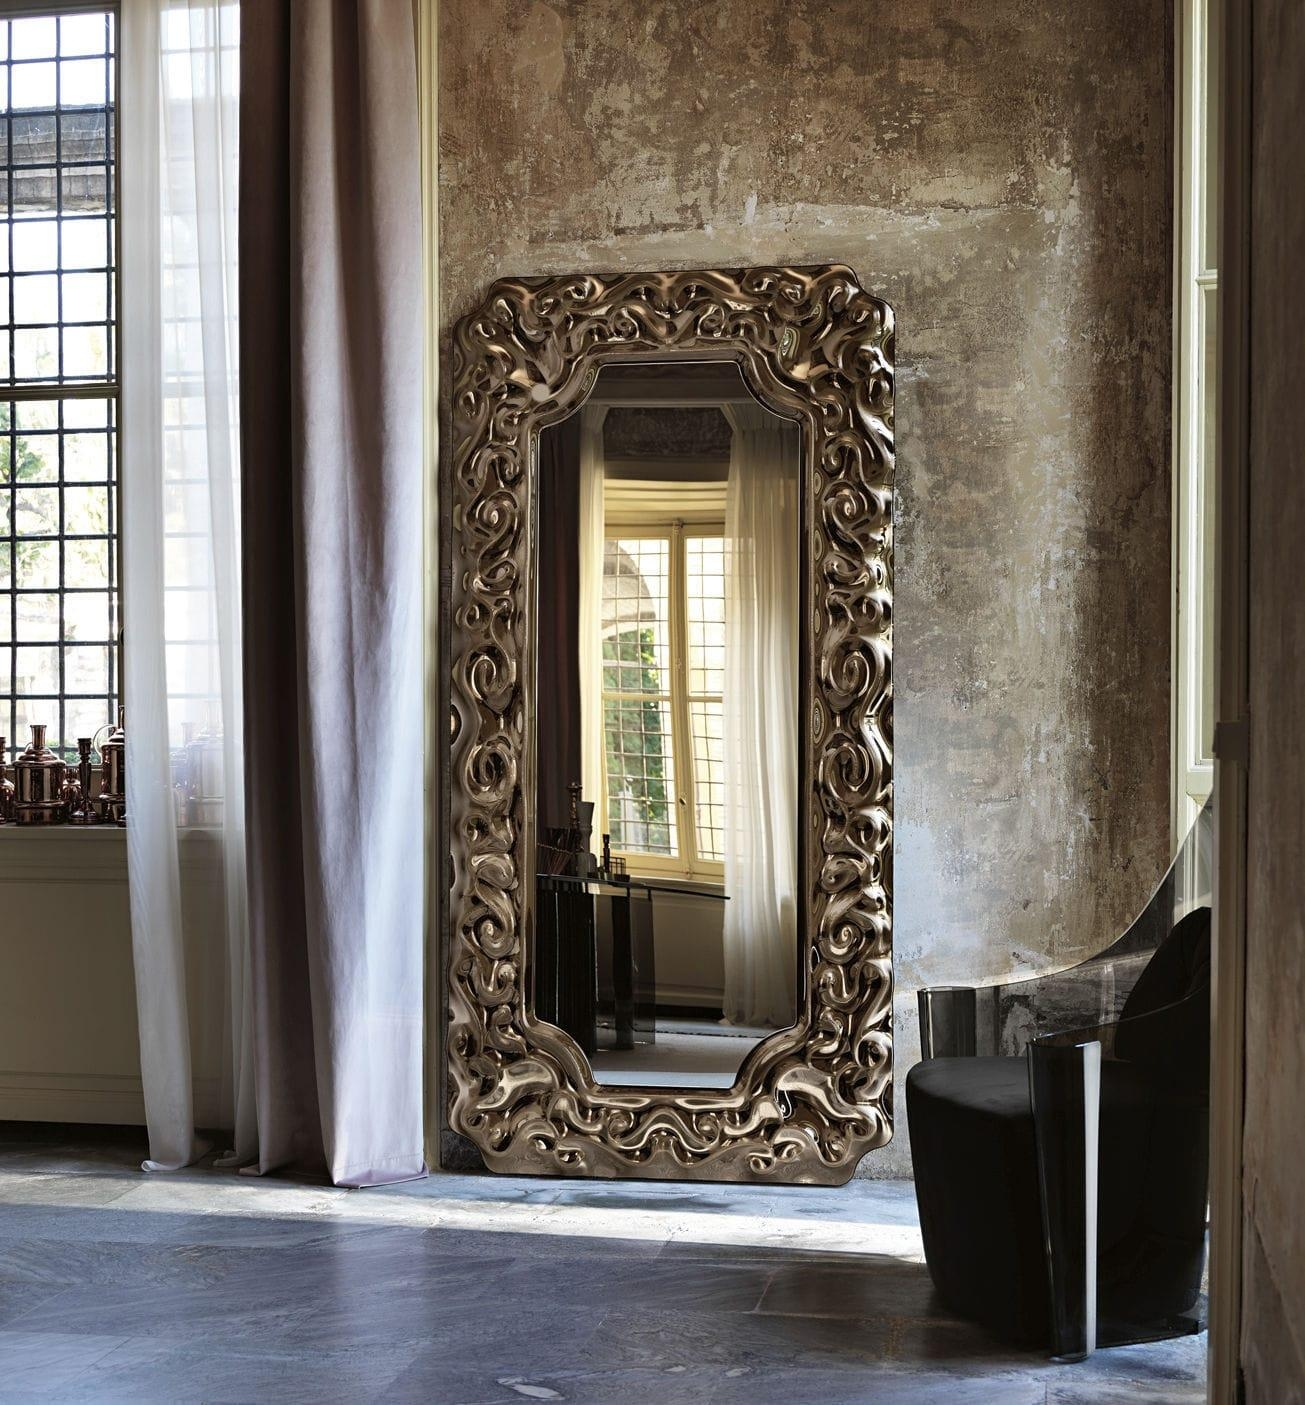 Wall Mounted Mirror / New Baroque Design / Metal – New Baroque For Baroque Floor Mirror (Image 20 of 20)